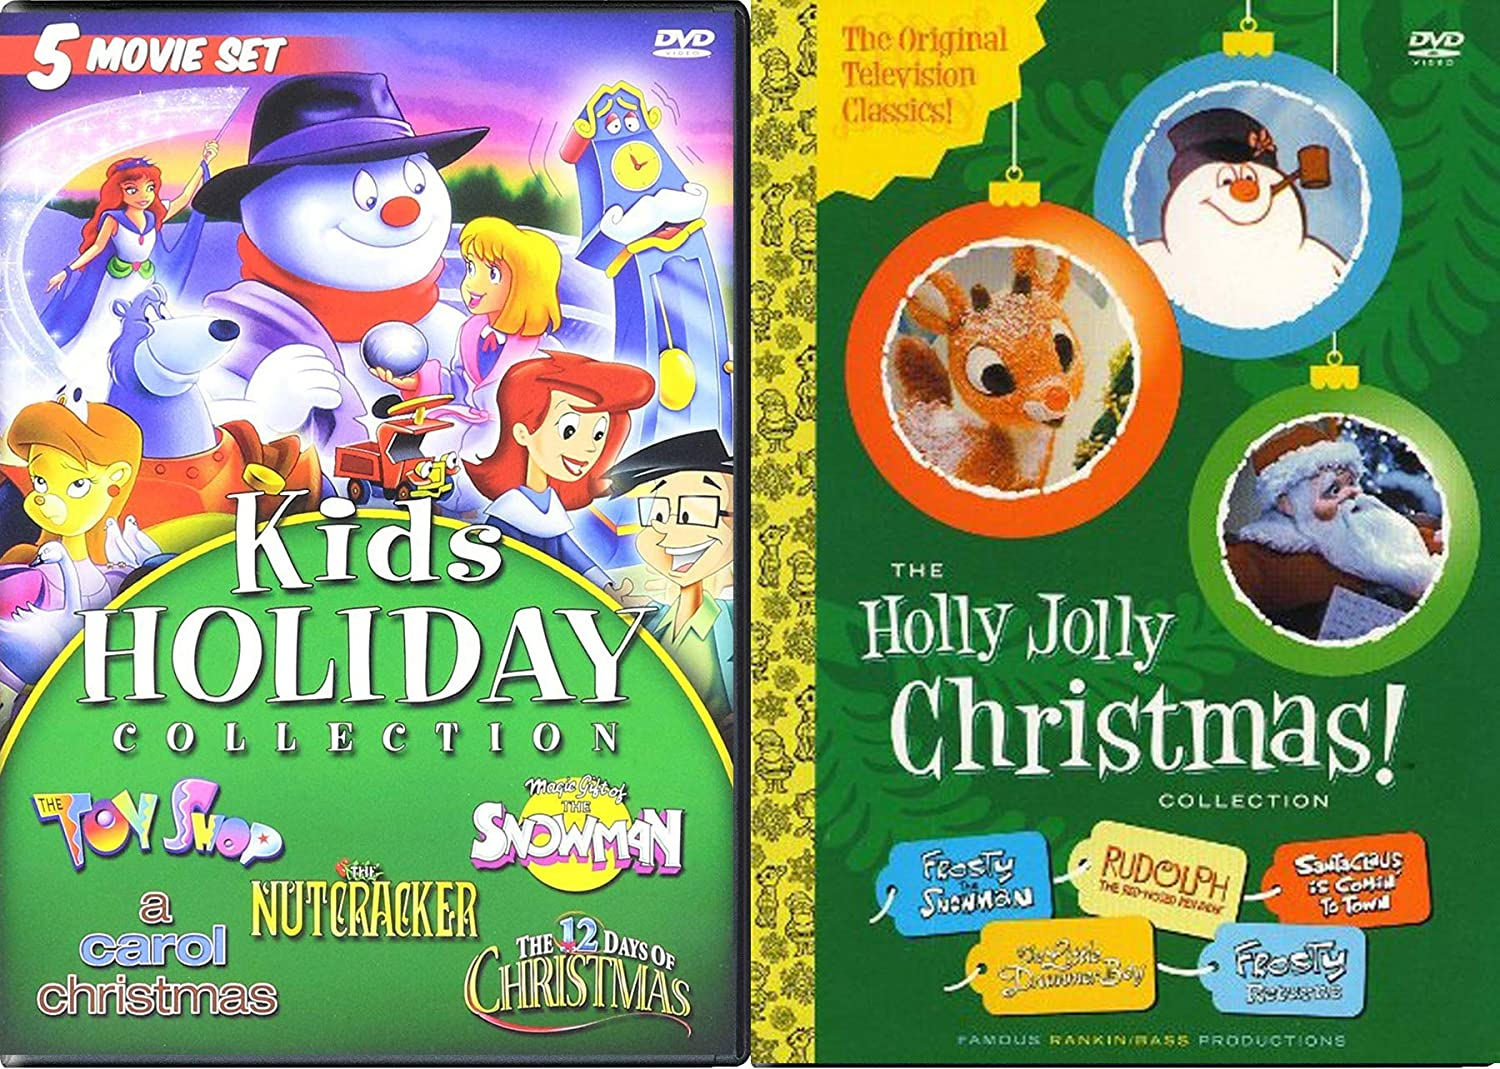 Amazon Com Box Set Holiday Original Rankin Bass Holly Jolly Christmas Classics Animated Frosty Snowman Rudolph Red Nose Reindeer Little Drummer Boy Santa Claus Is Coming To Town 5 Cartoon